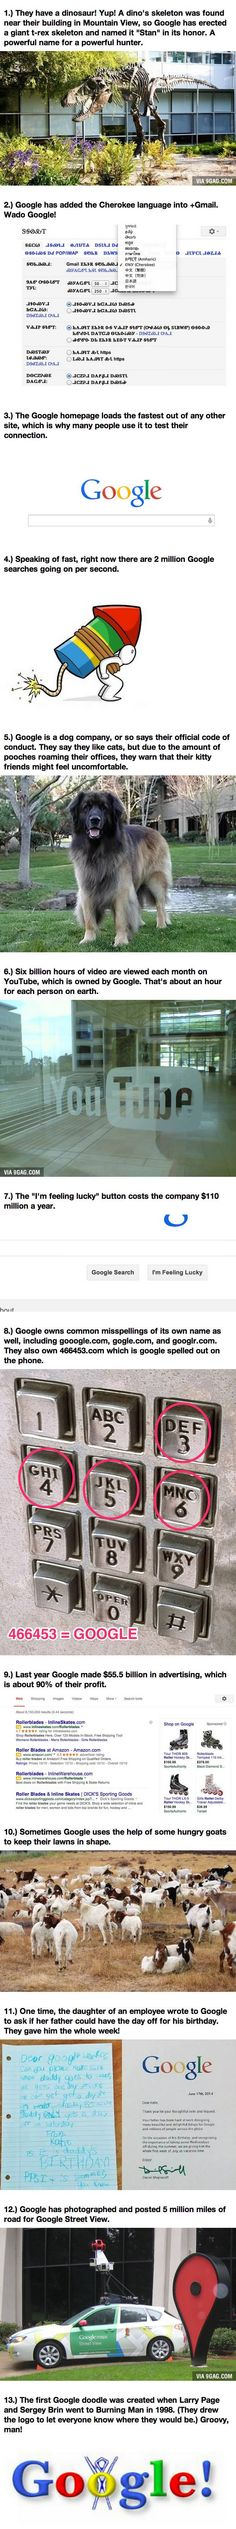 Little Known But Crazy Facts About Google Prove They're Going To Take Over The World Weird Facts, Fun Facts, Crazy Facts, Random Facts, Google Facts, Google Funny, Epic Story, Smiles And Laughs, The More You Know